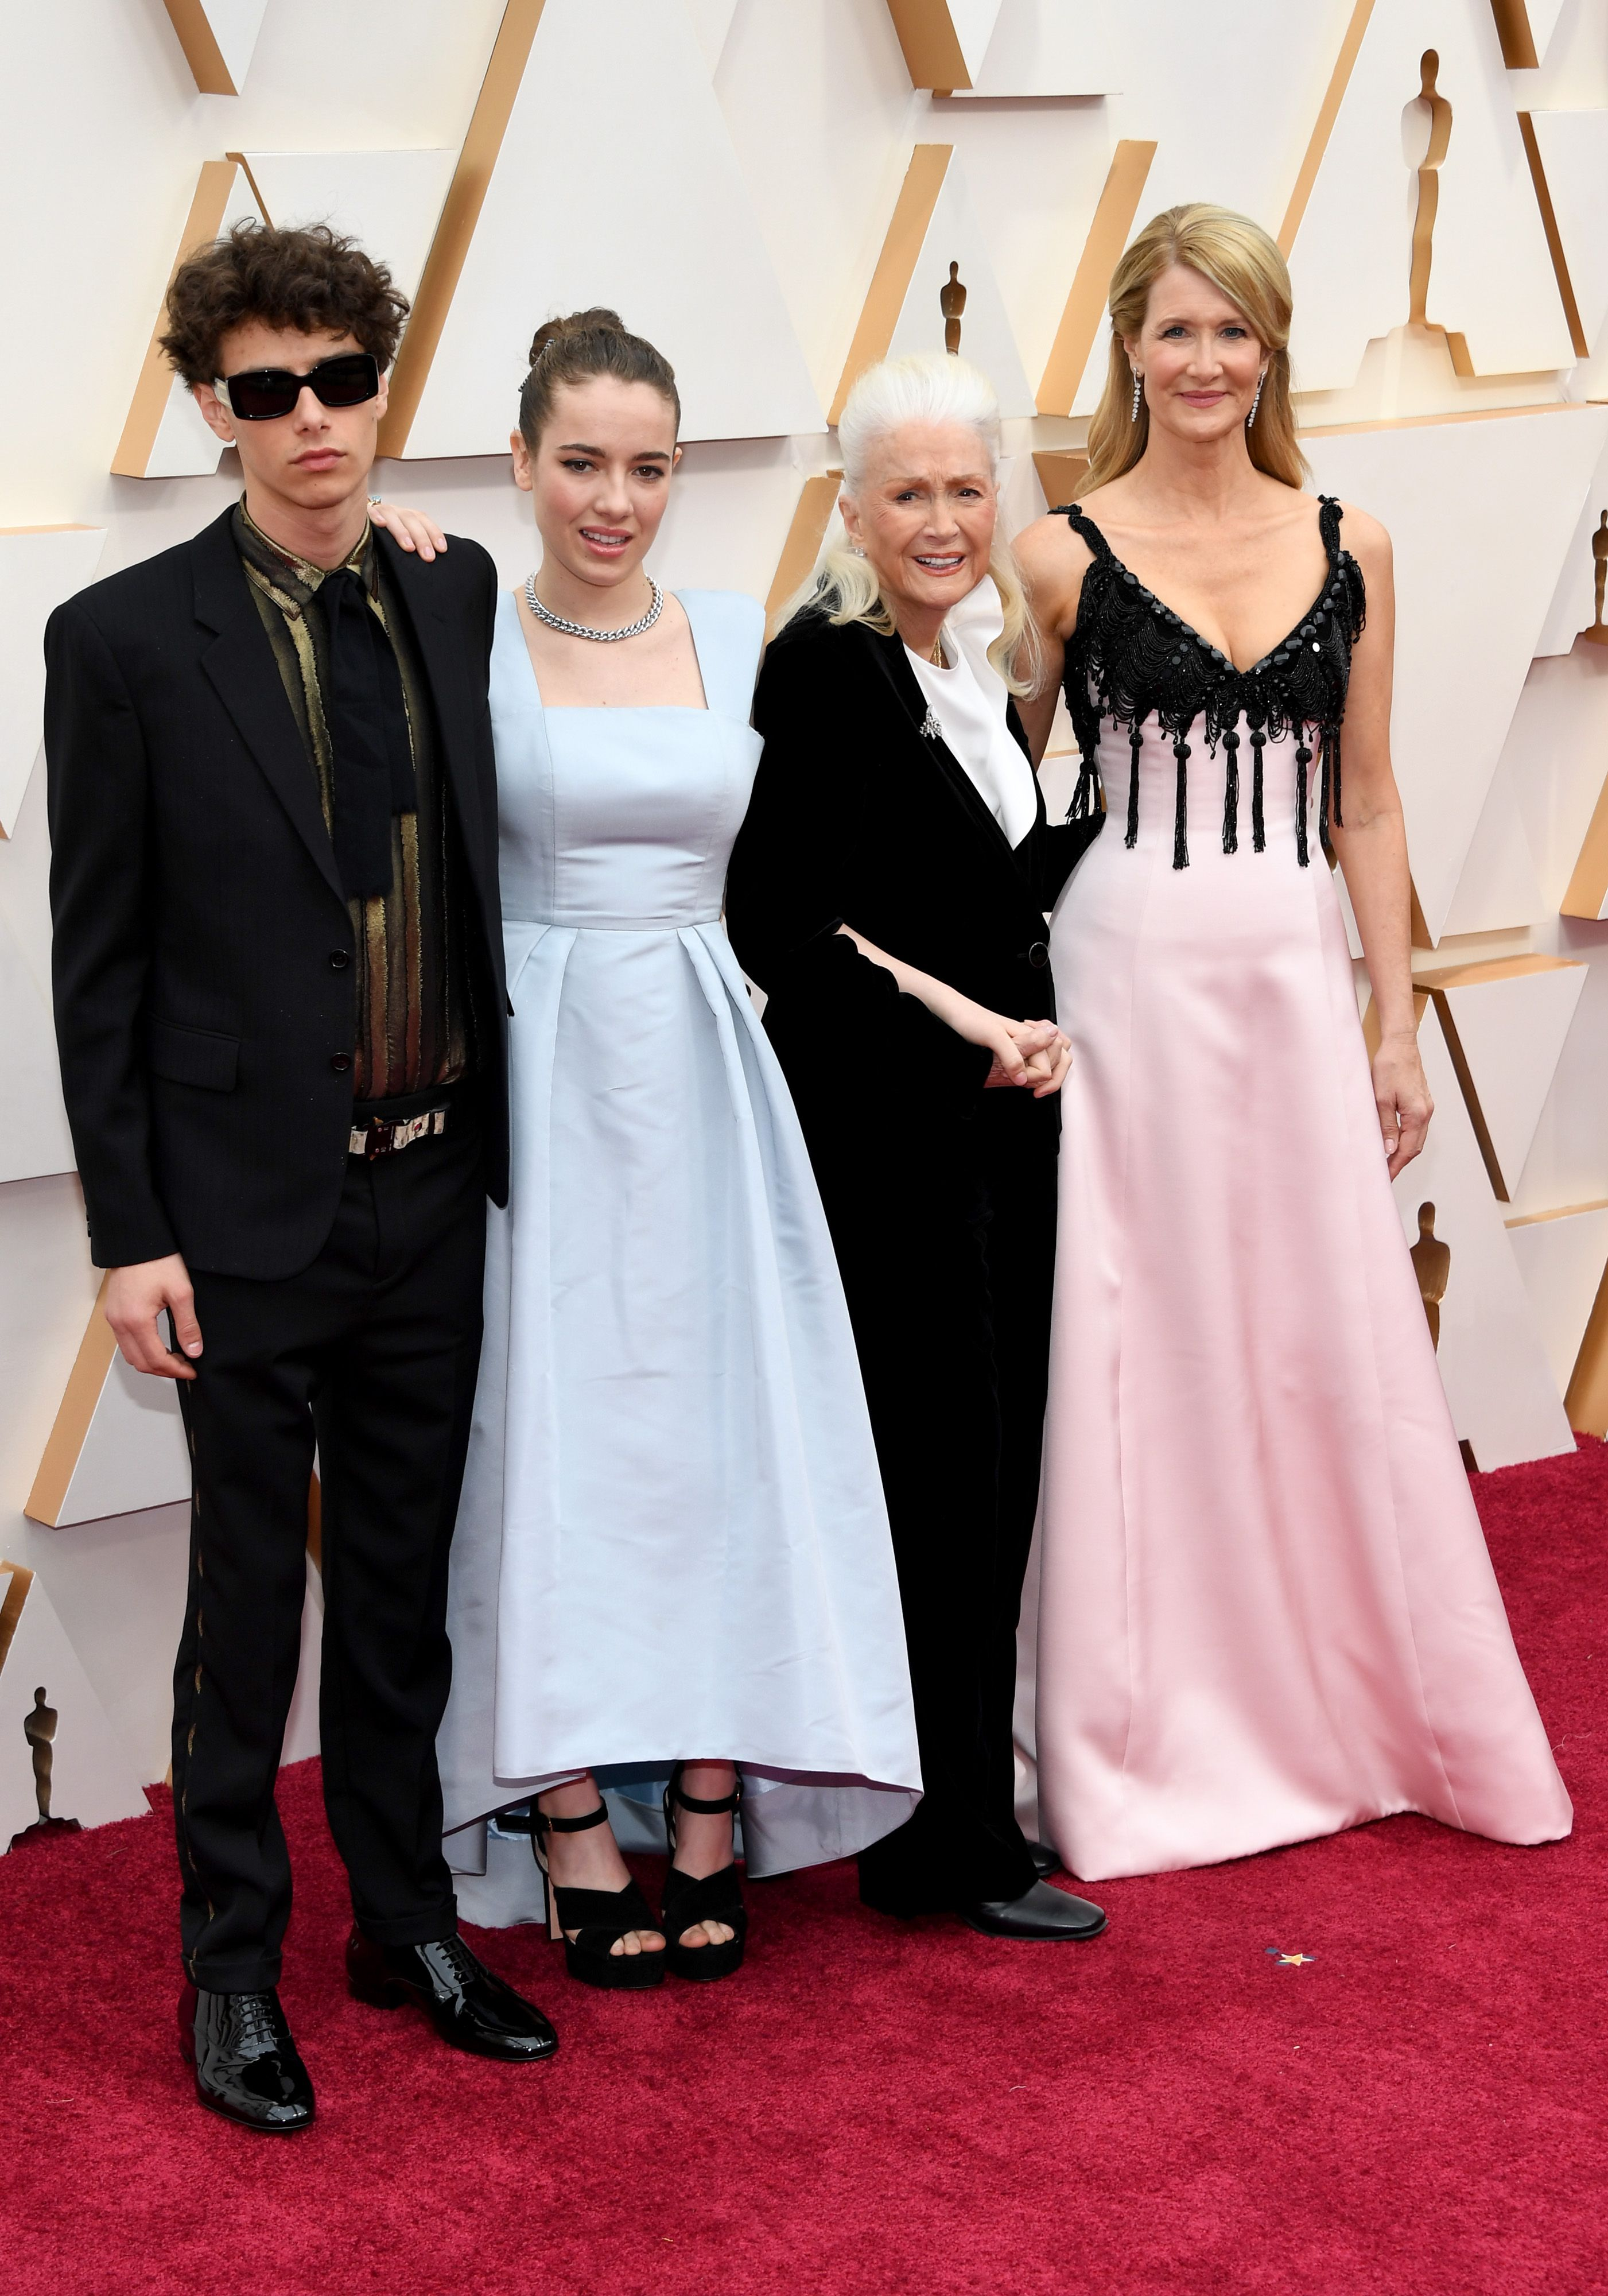 (L-R) Ellery Harper, Jaya Harper, Diane Ladd and Laura Dern during the 92nd Annual Academy Awards at Hollywood and Highland on February 09, 2020 in Hollywood, California.   Source: Getty Images